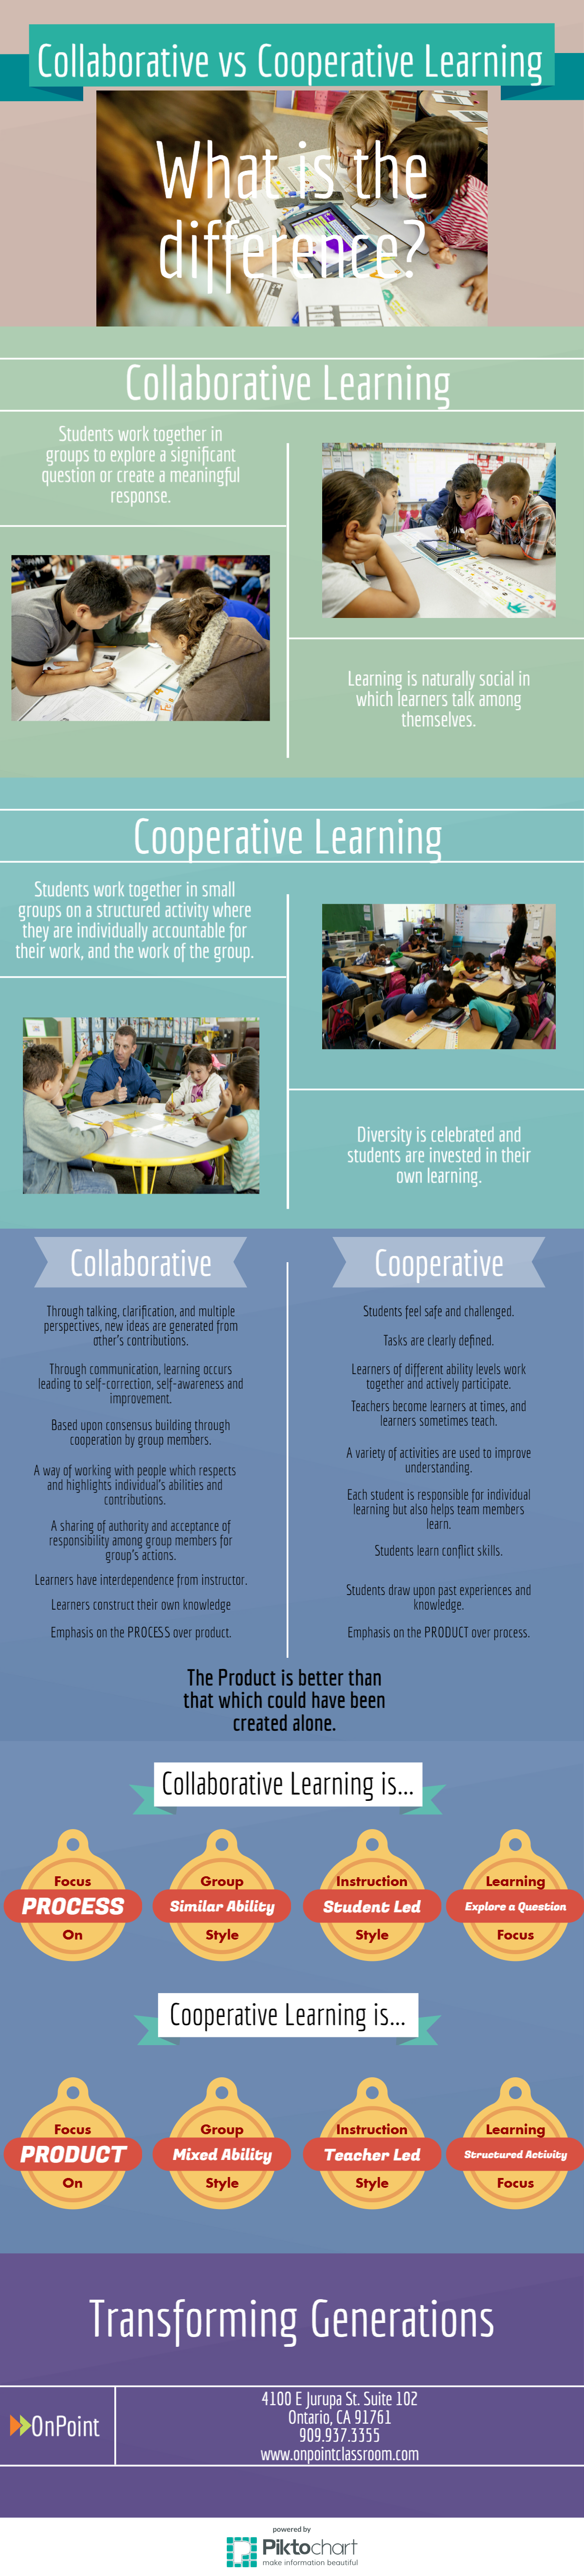 Collaborative Strategies In The Classroom ~ What is the difference between collaborative and